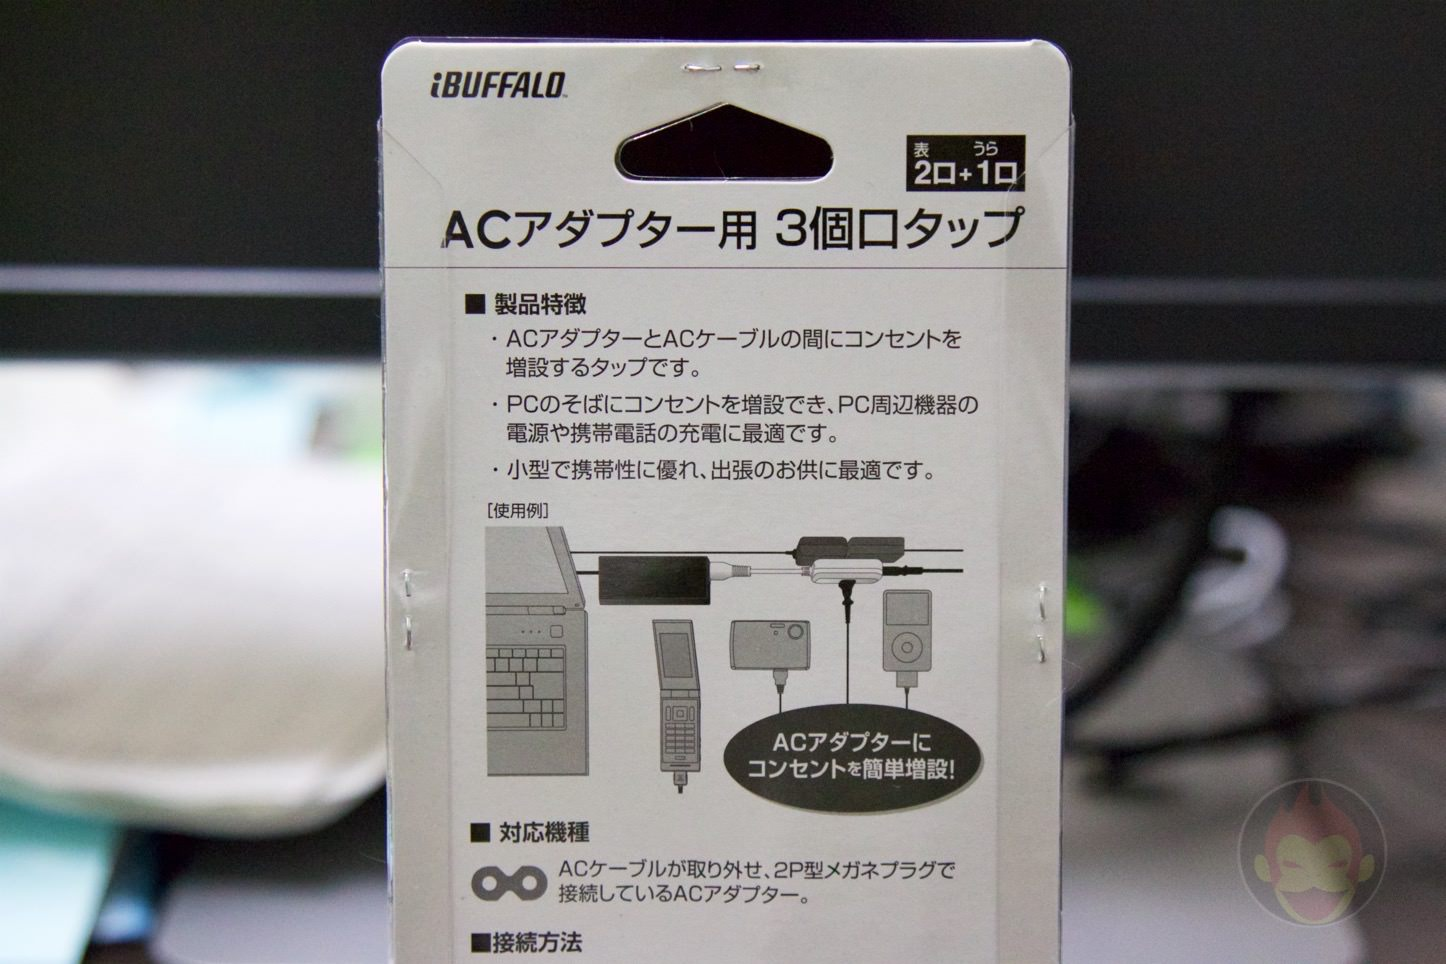 IBUFFALO AC Adapter